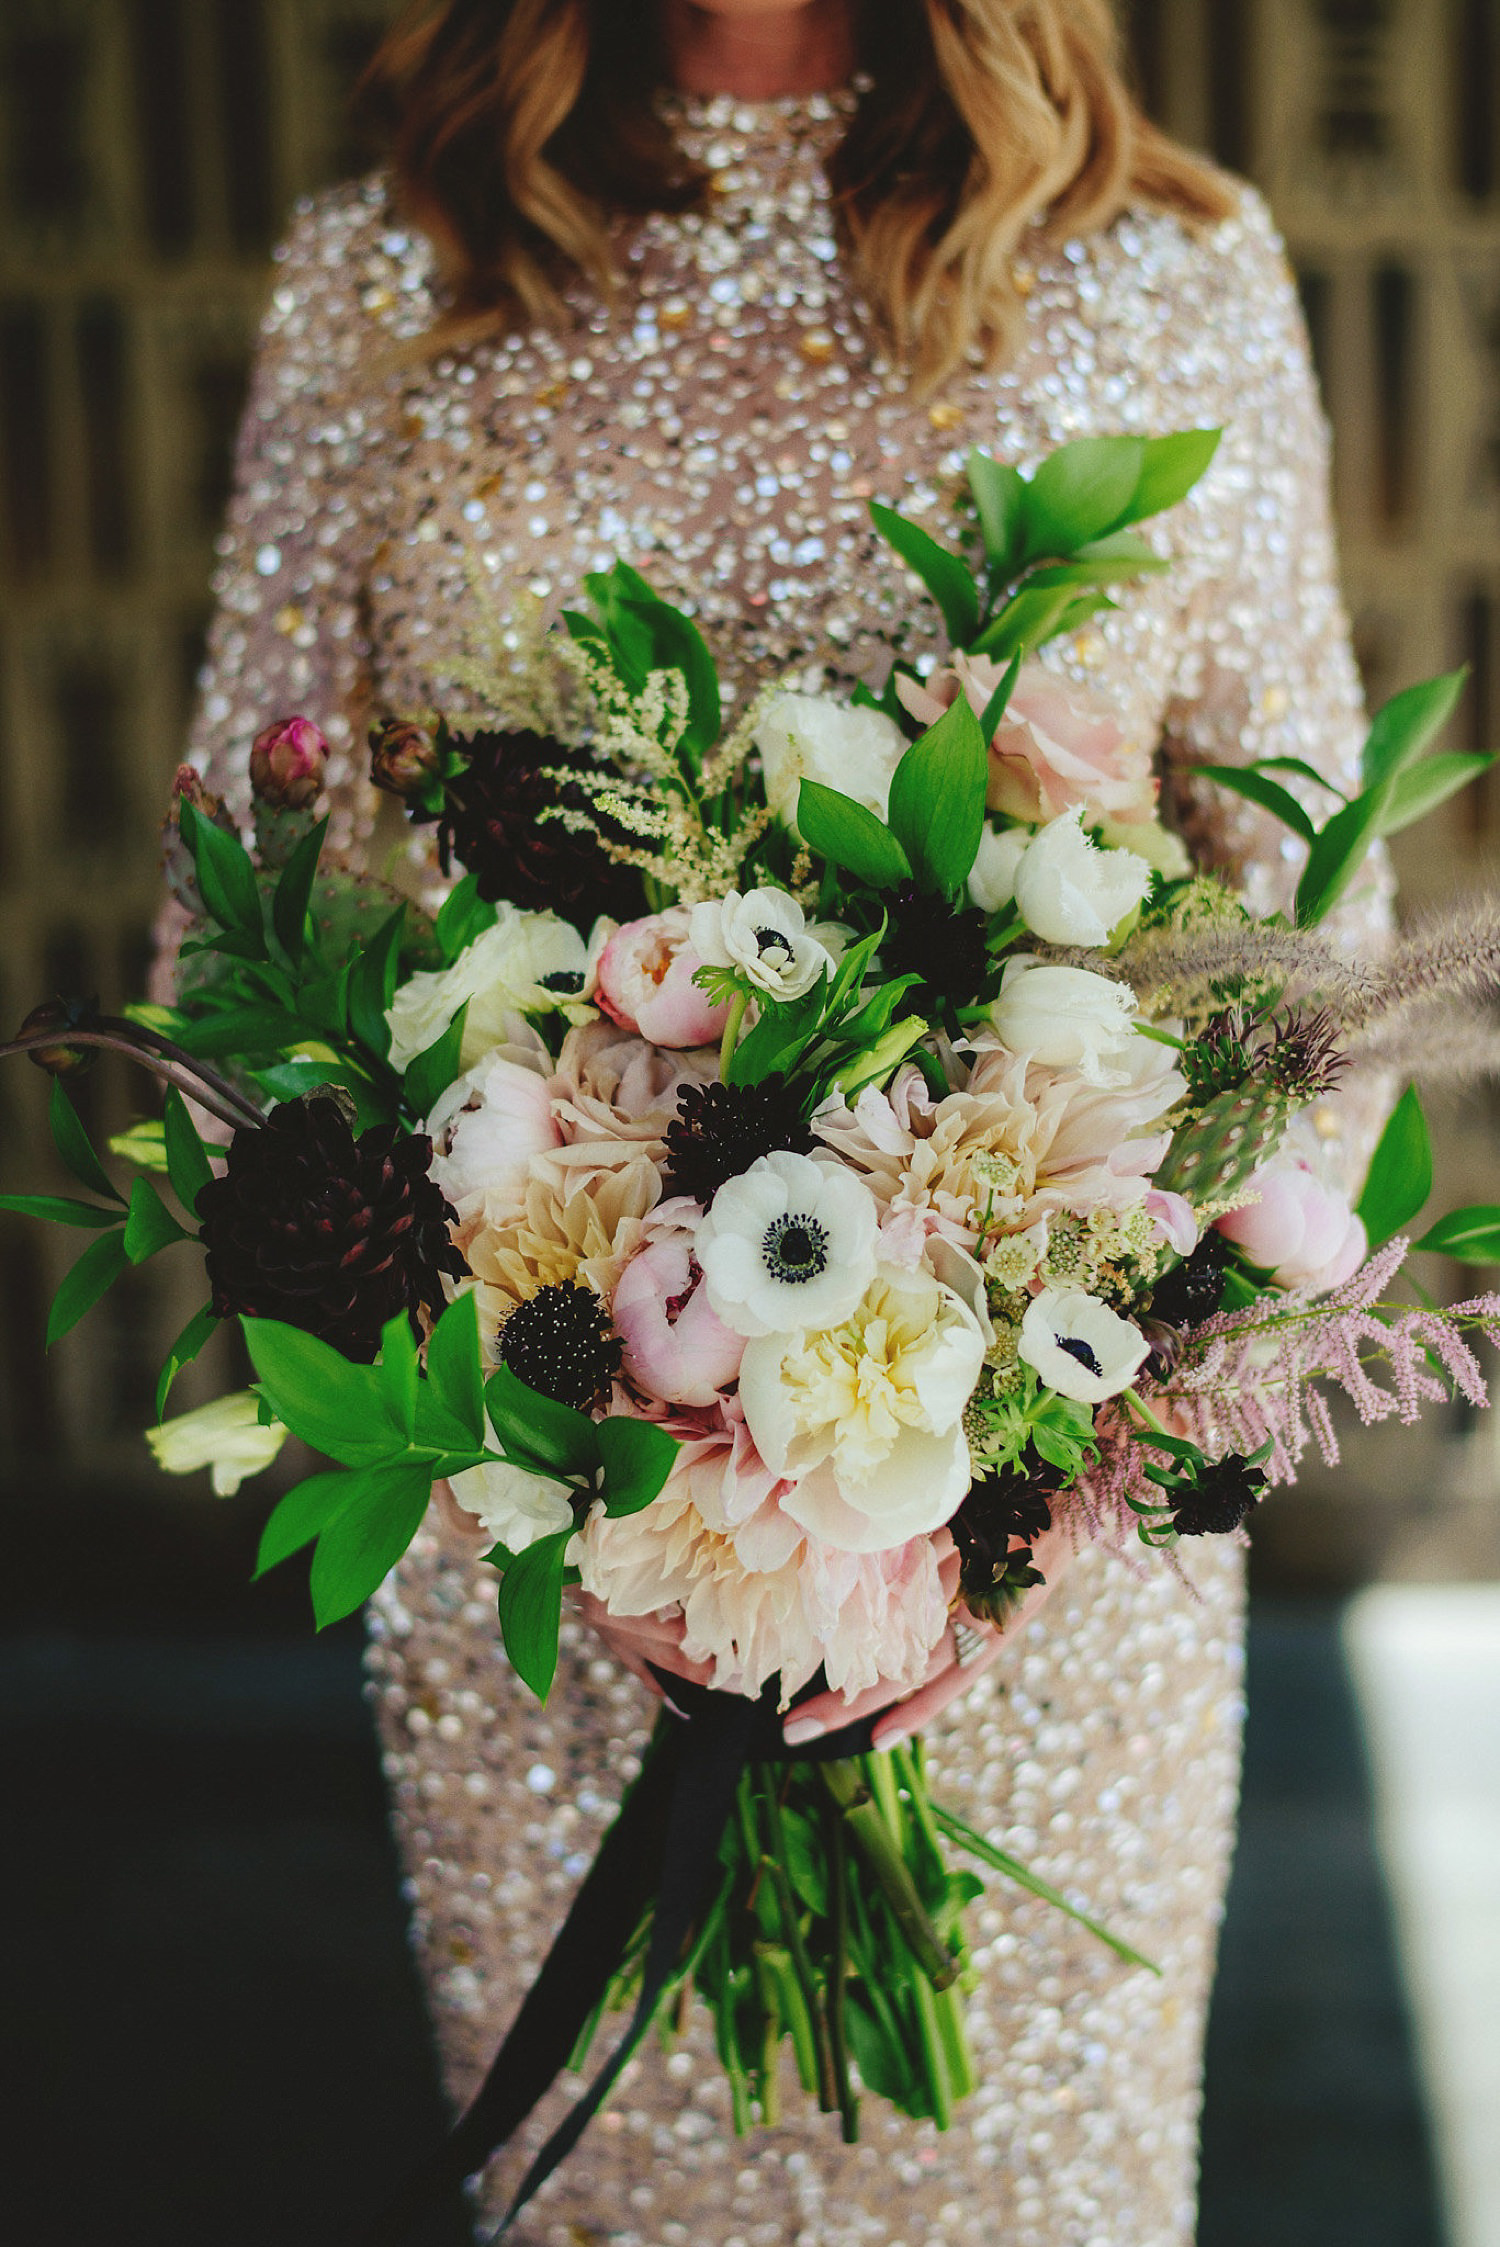 rad las vegas wedding bride's bouquet with cacti